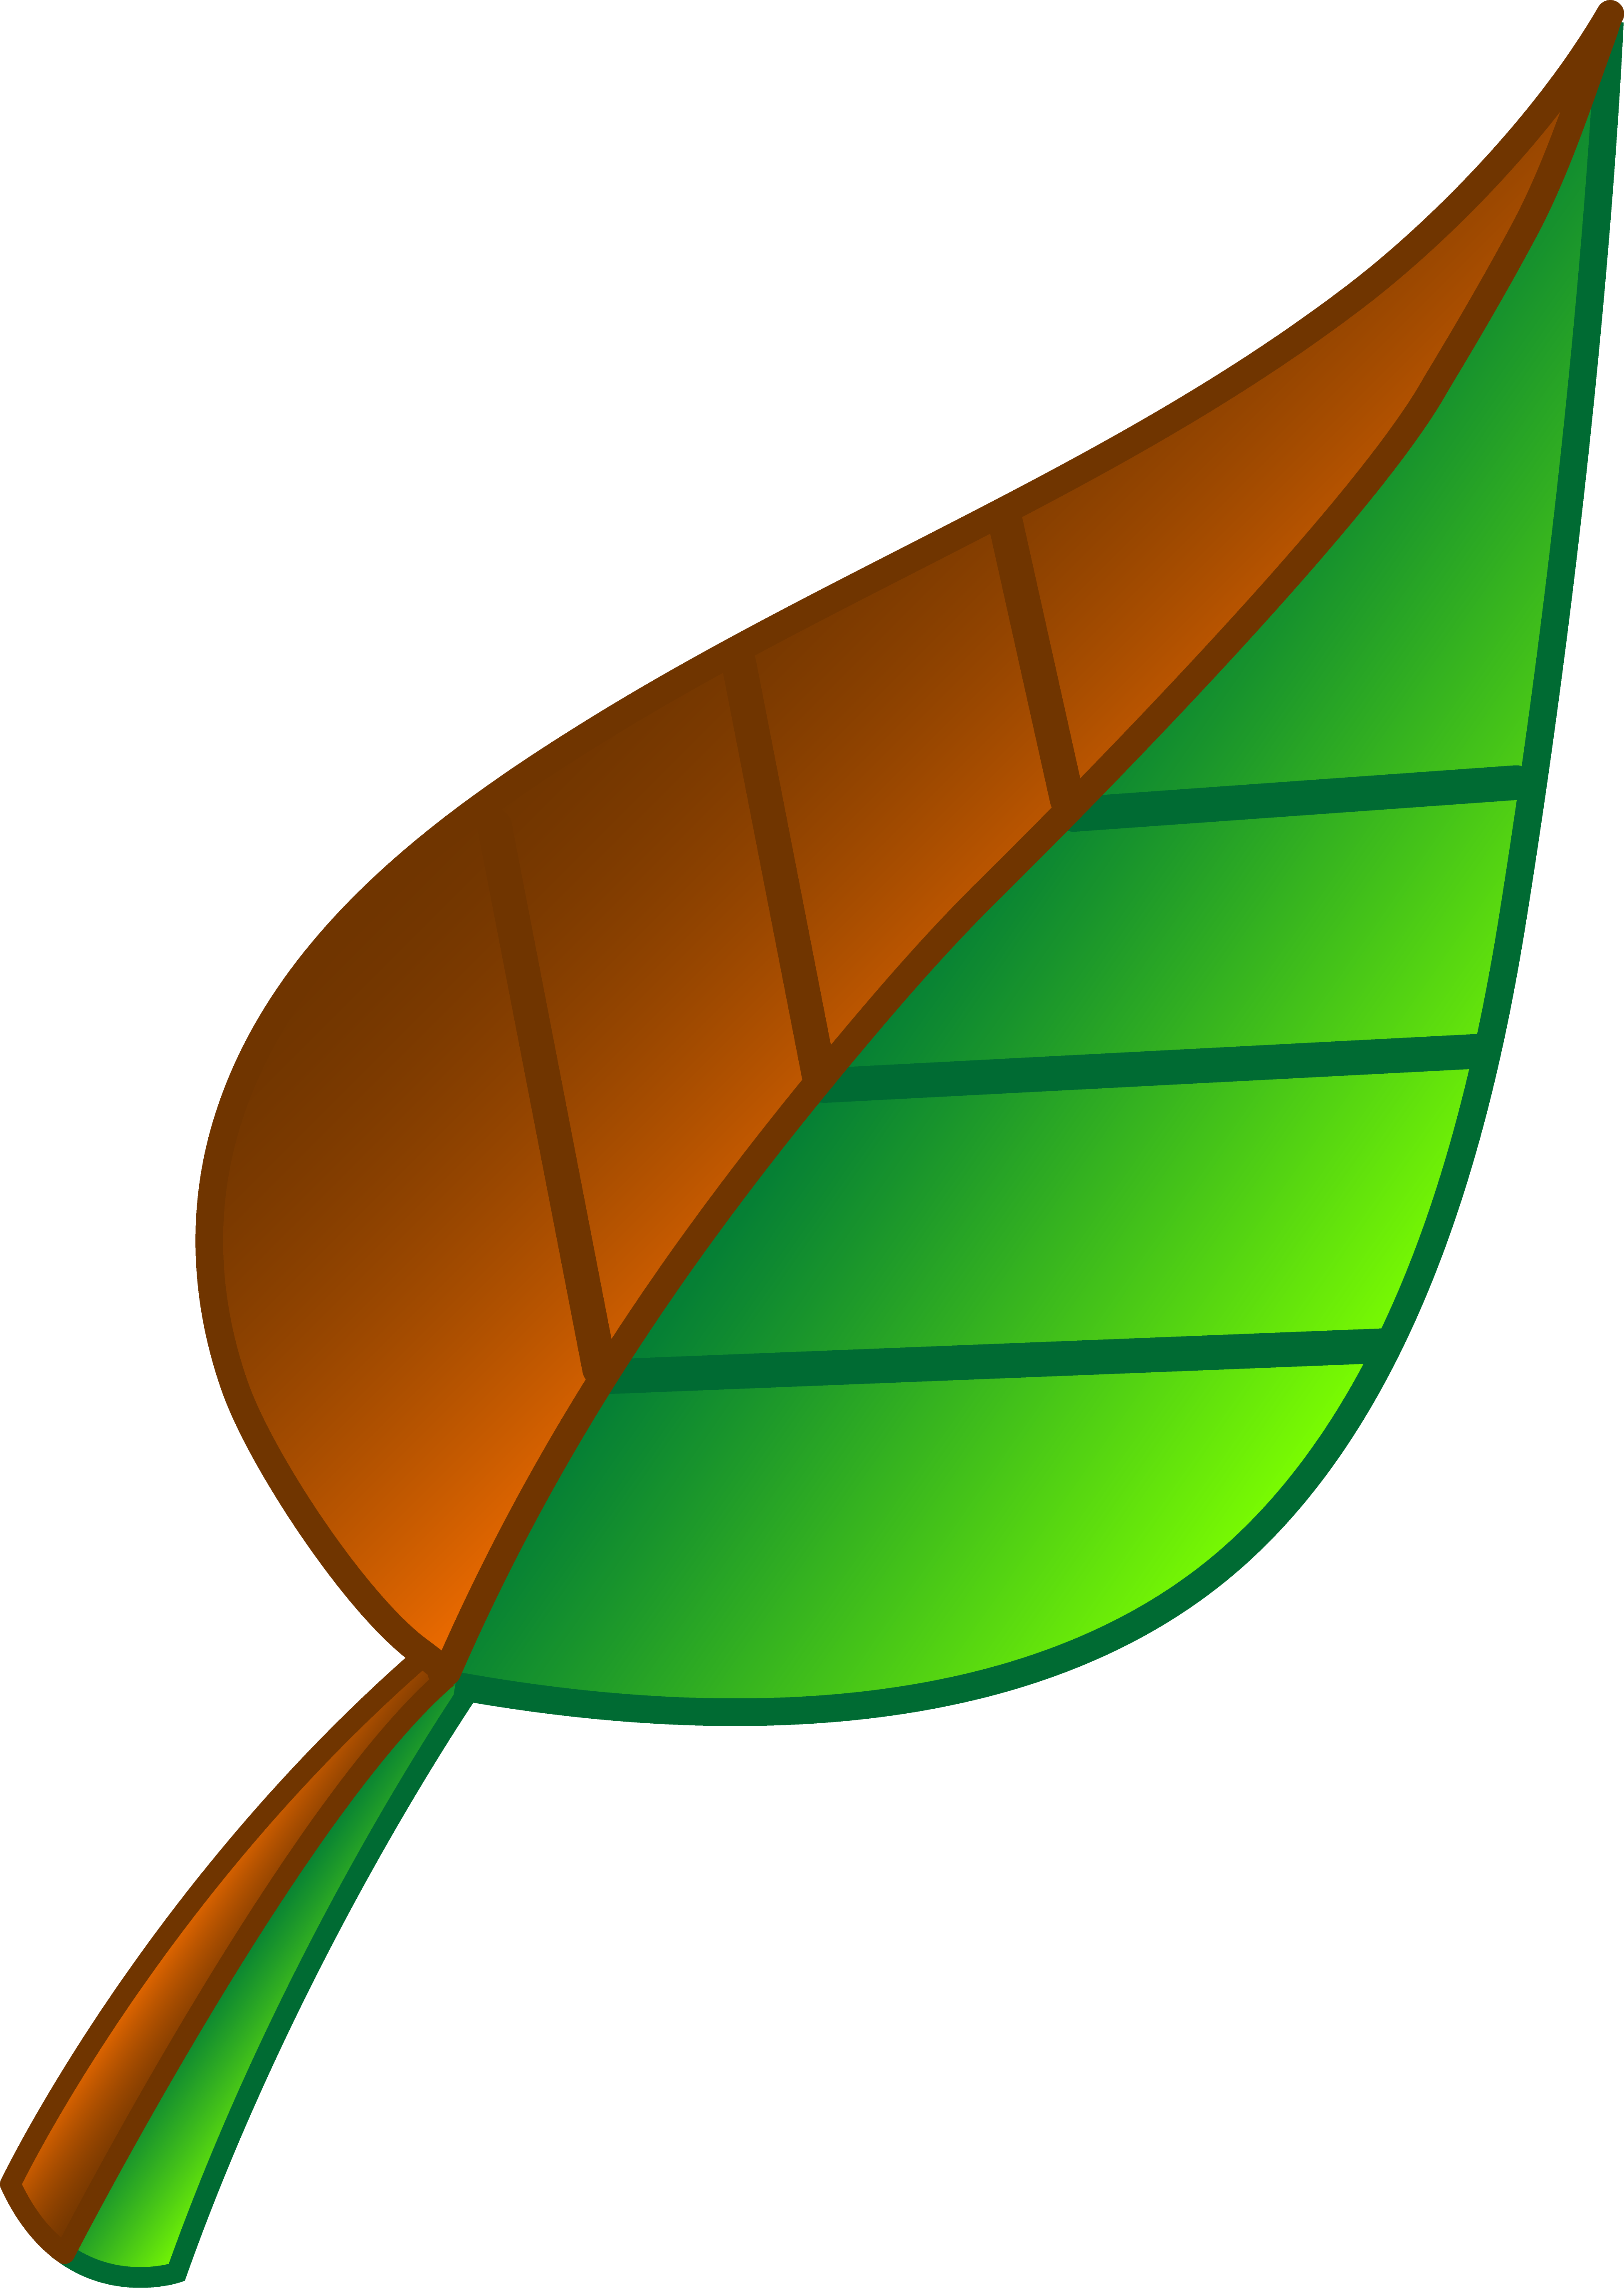 Leave vector clipart. Brown and green leaf